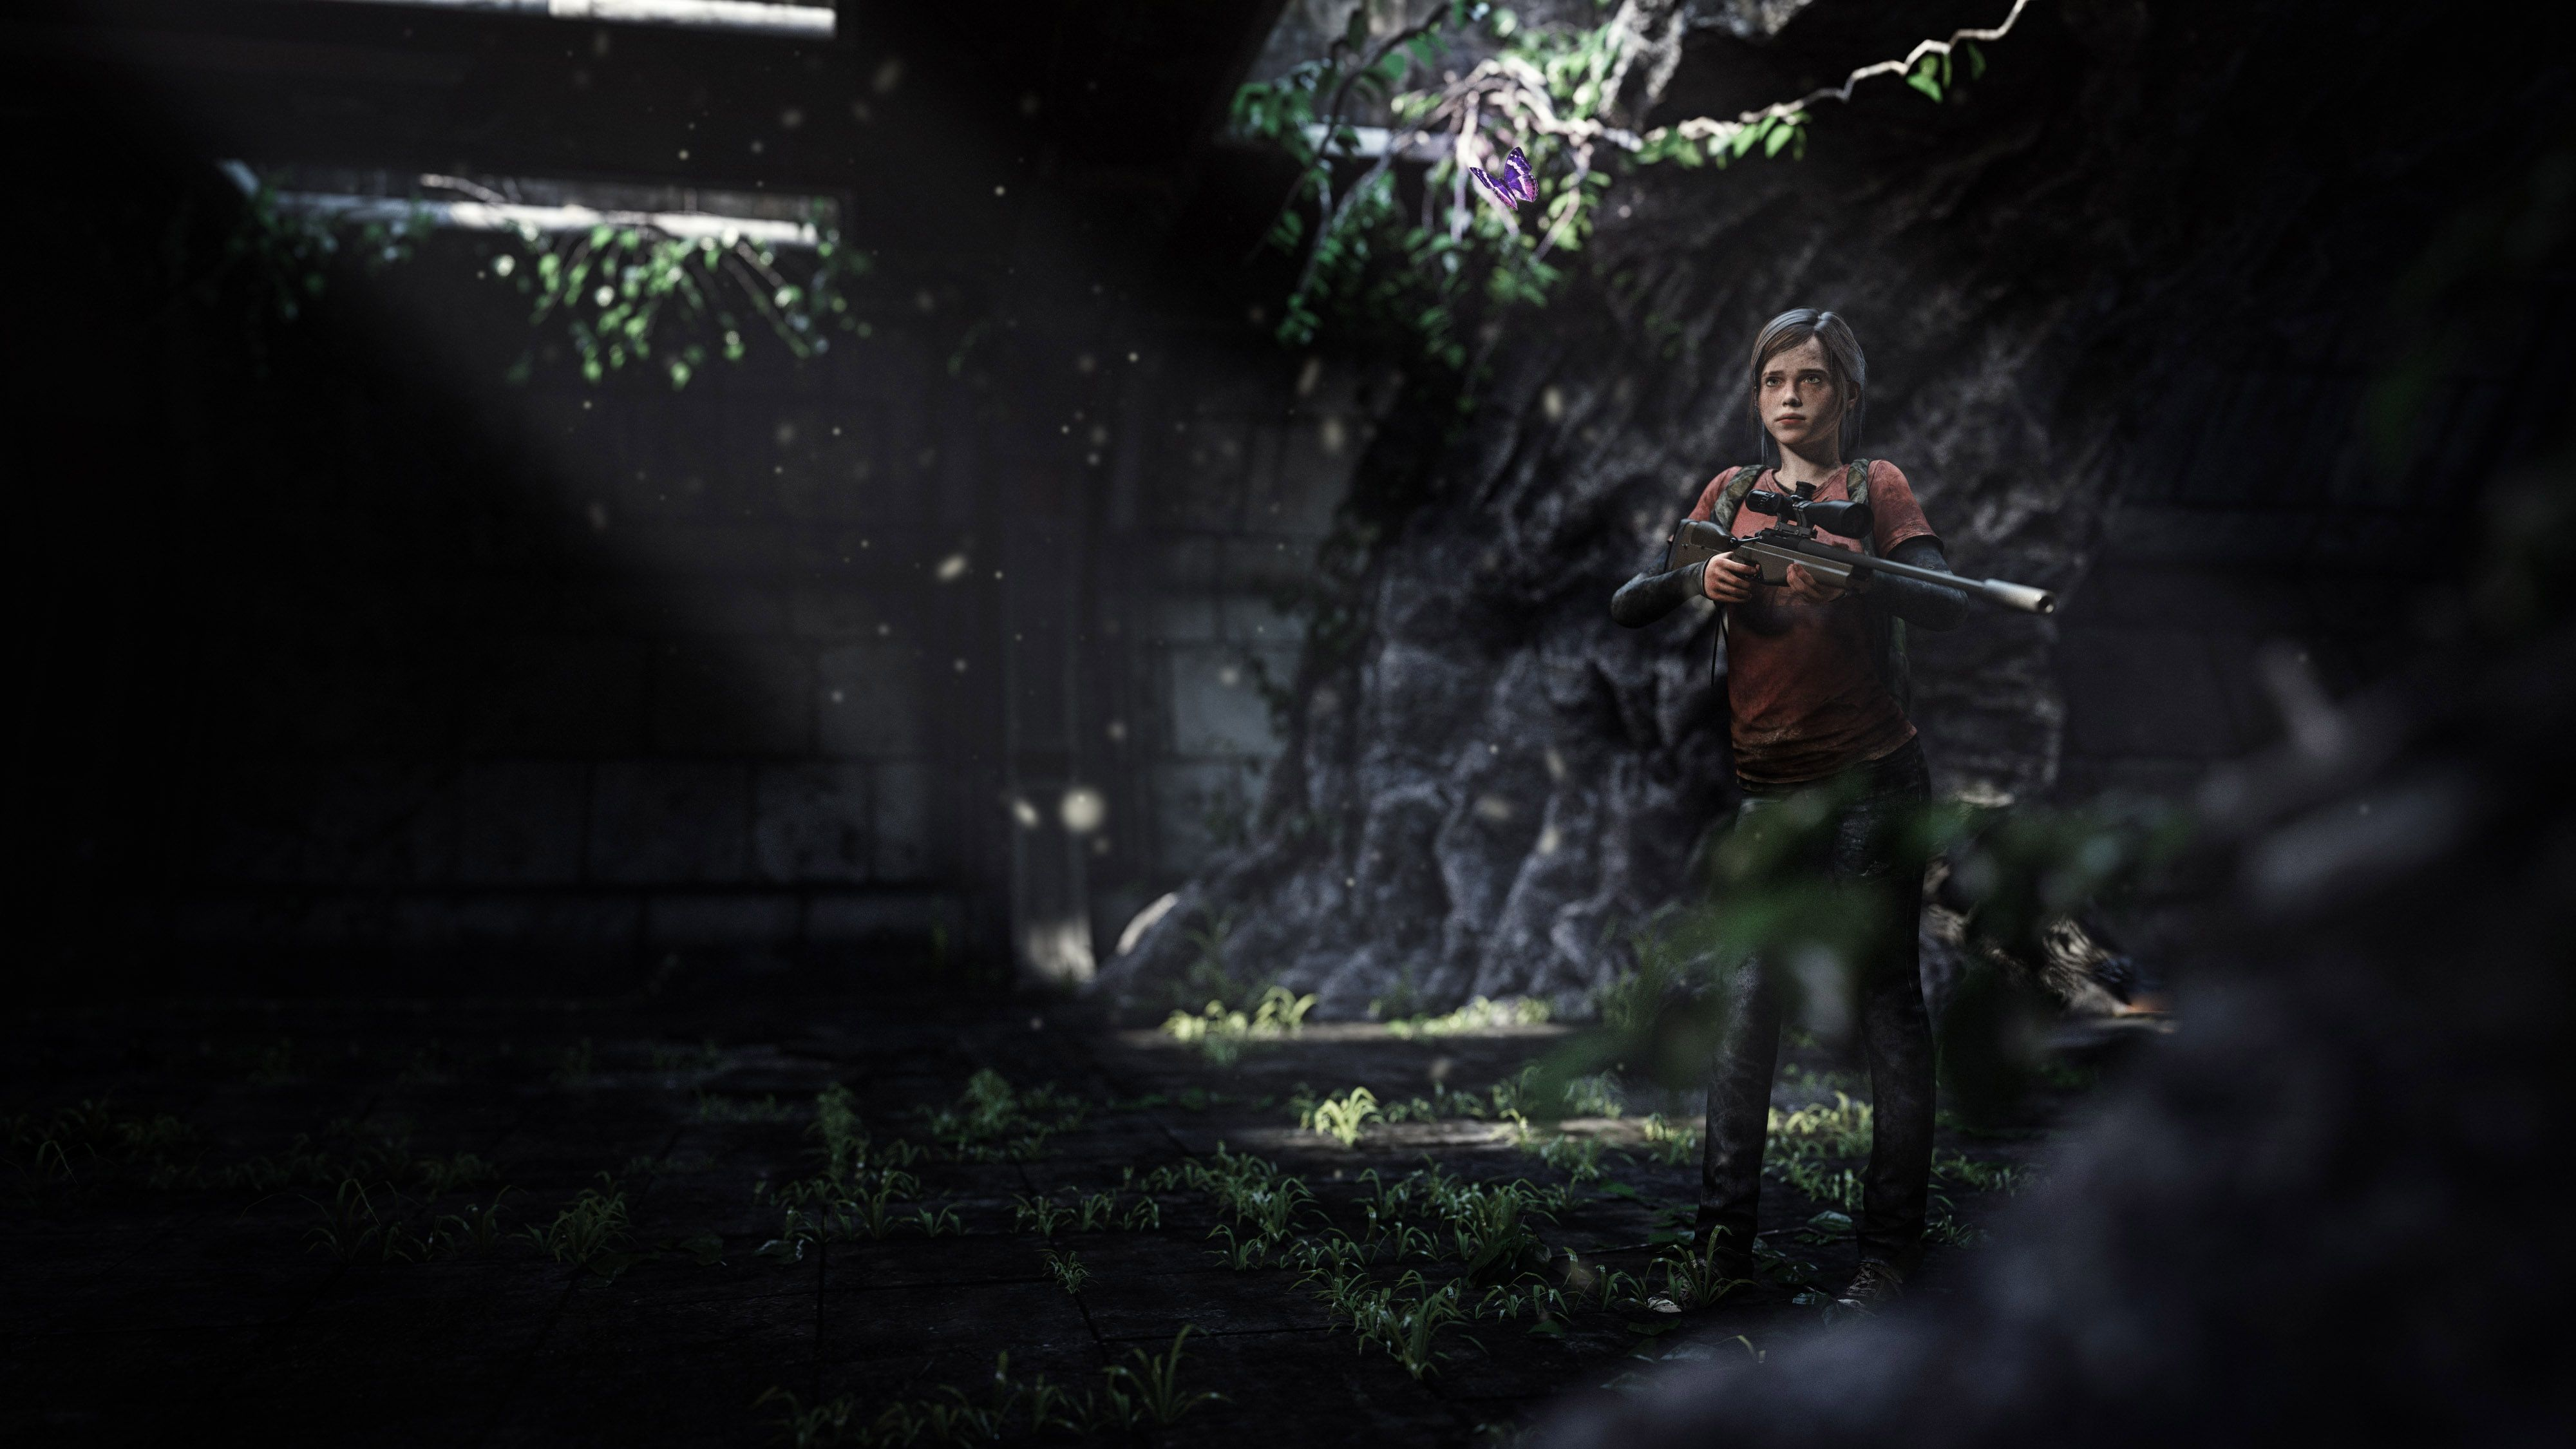 Fondo de pantalla de The Last of Us 4000x2250